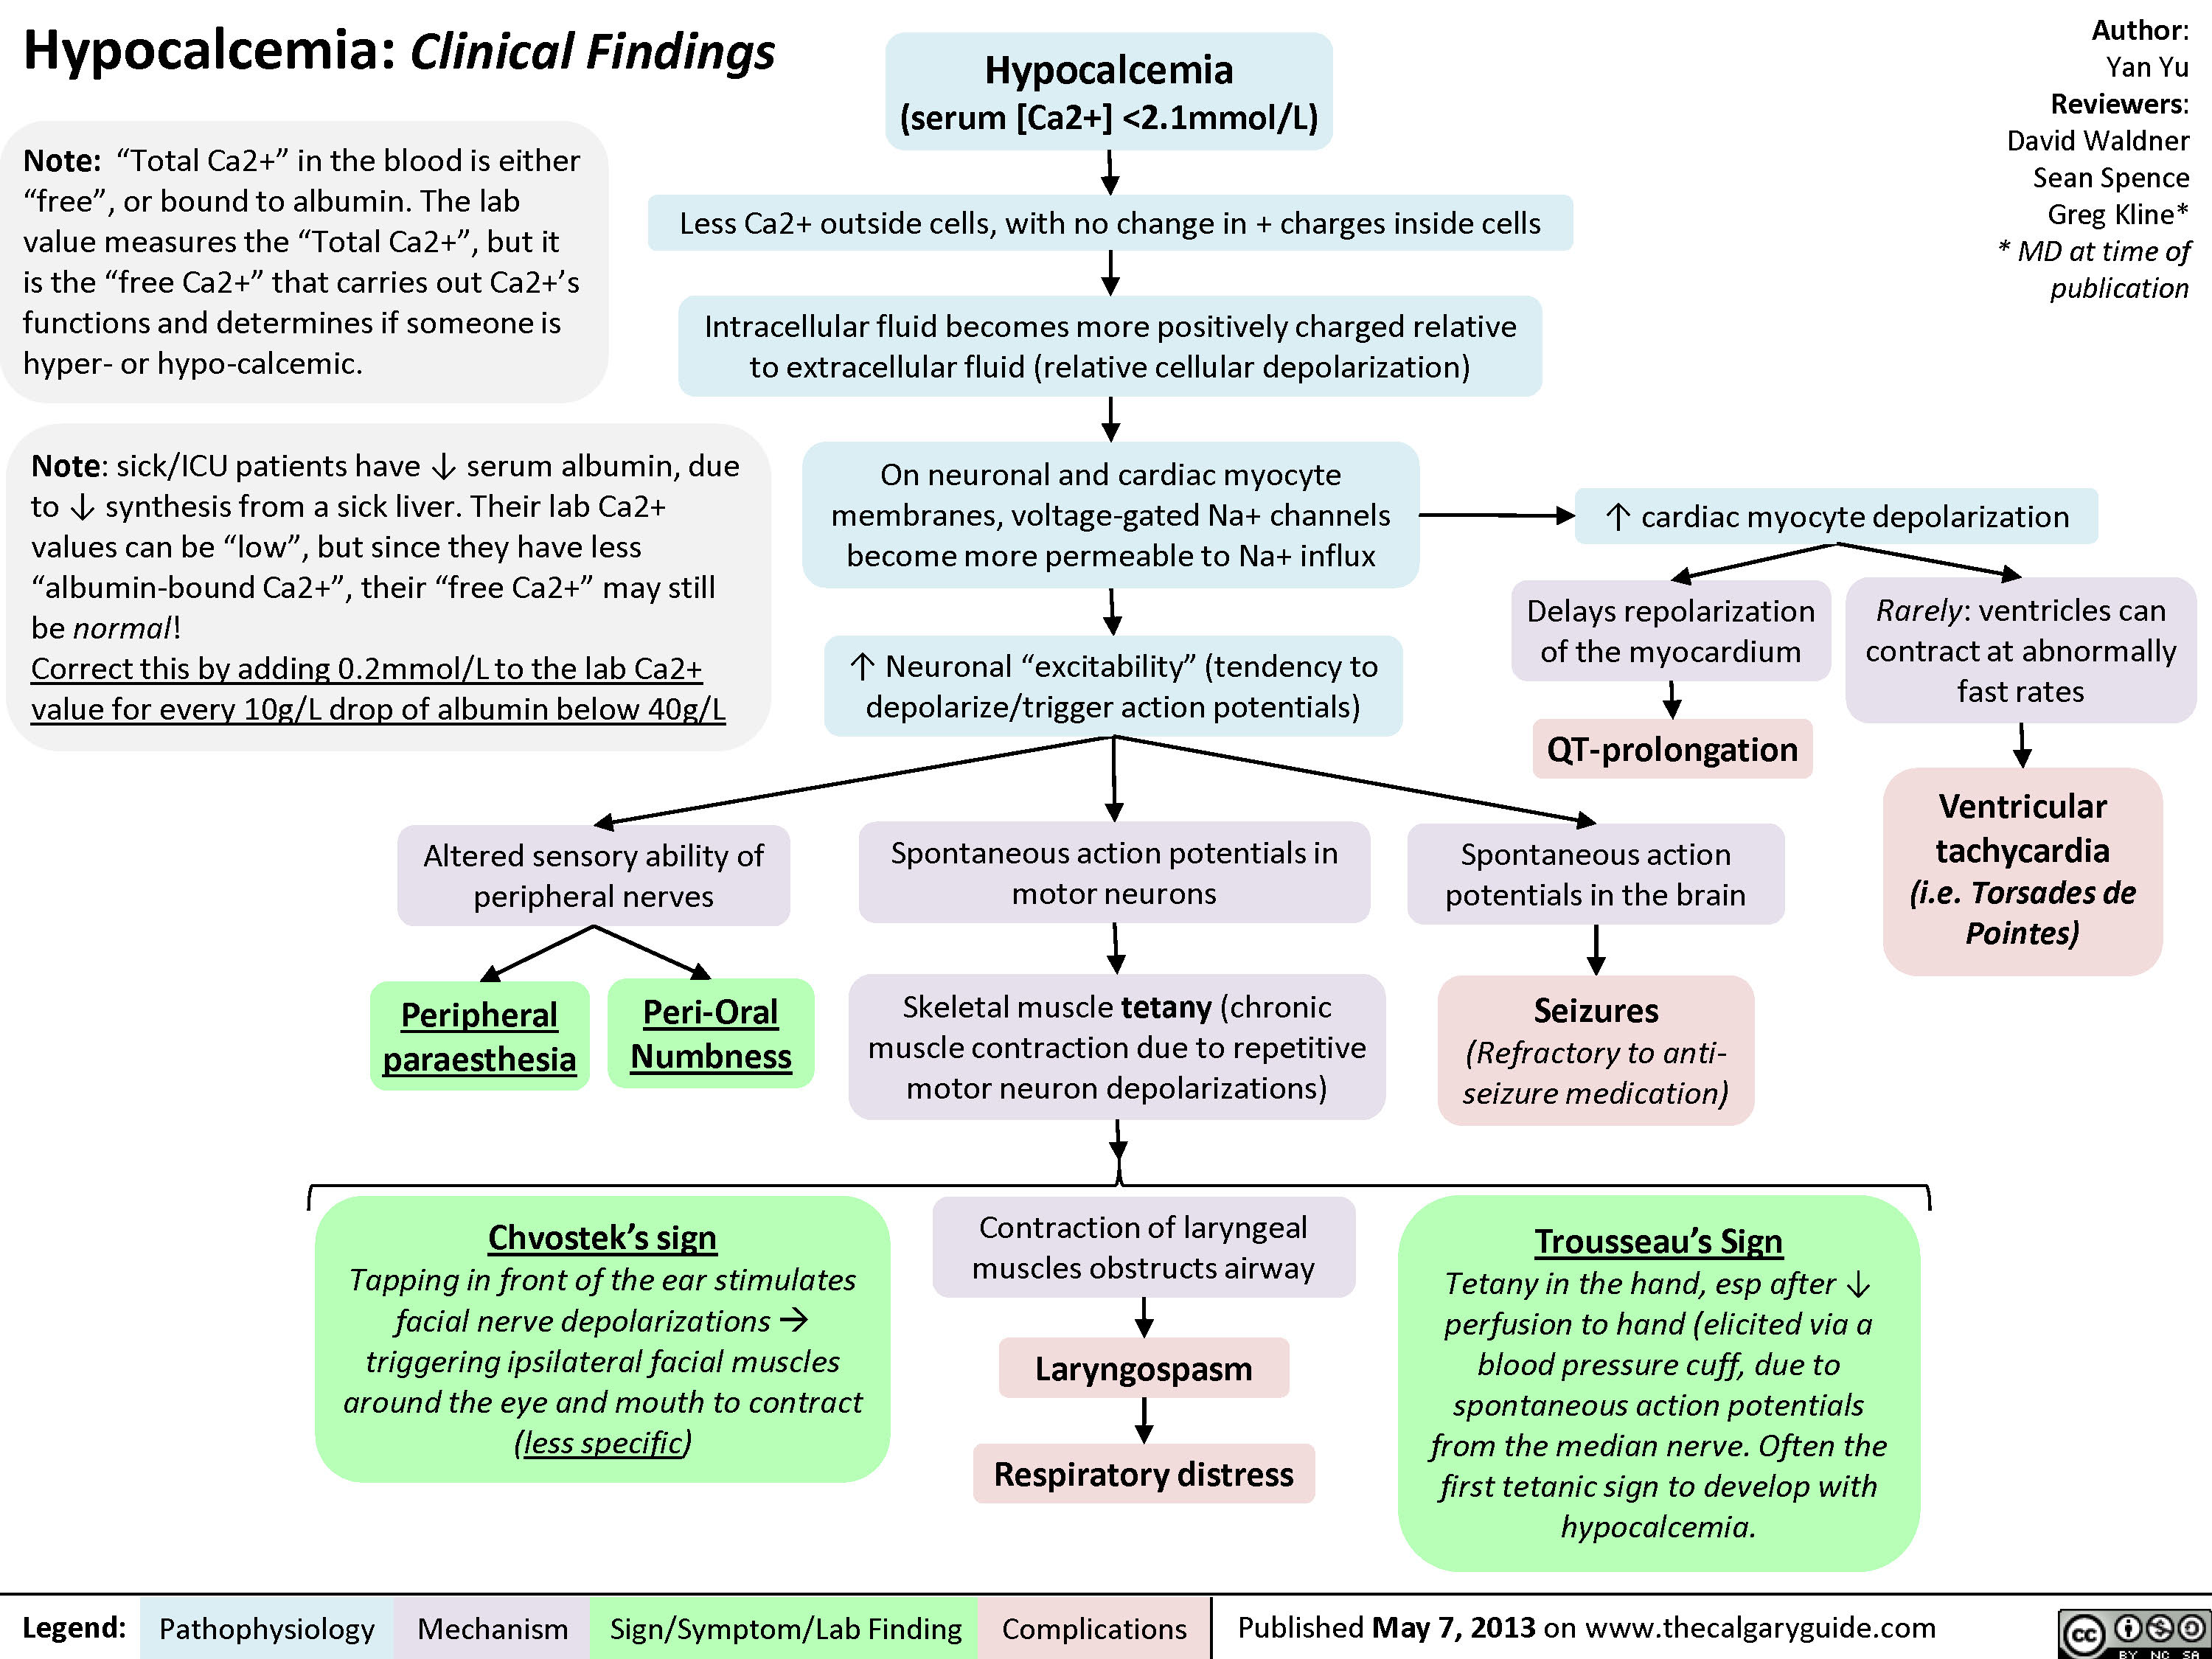 Hypocalcemia: Clinical Findings